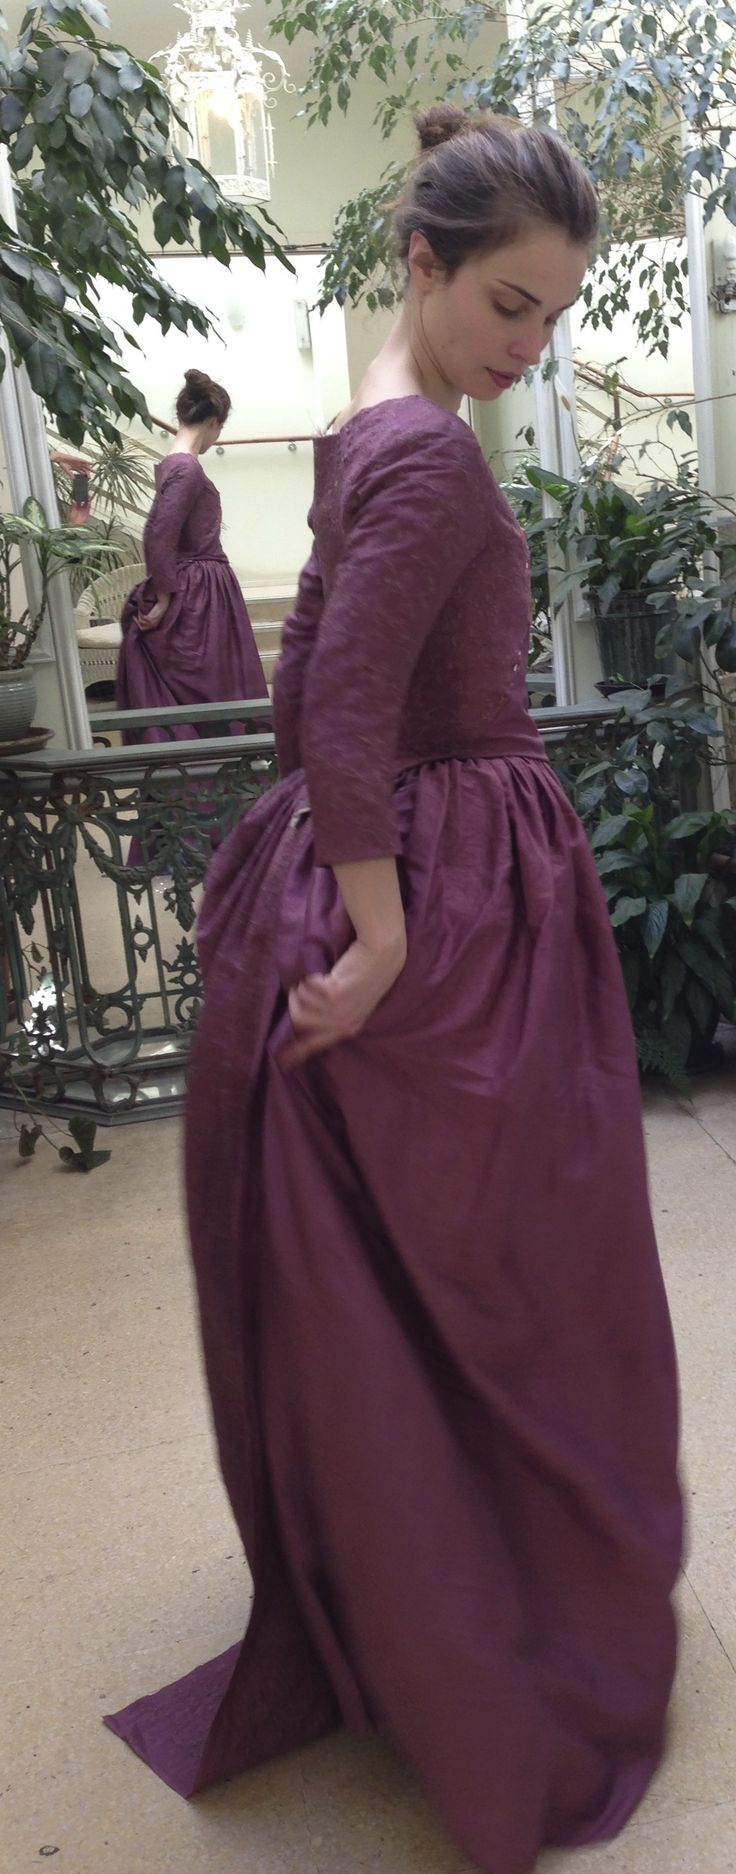 Elizabeth (Heida Reed) day dress costume fitting. Dress made from embroidered silk. Courtesy of Marianne Agertoft/Mammoth Screen. | Poldark, as seen on Masterpiece PBS